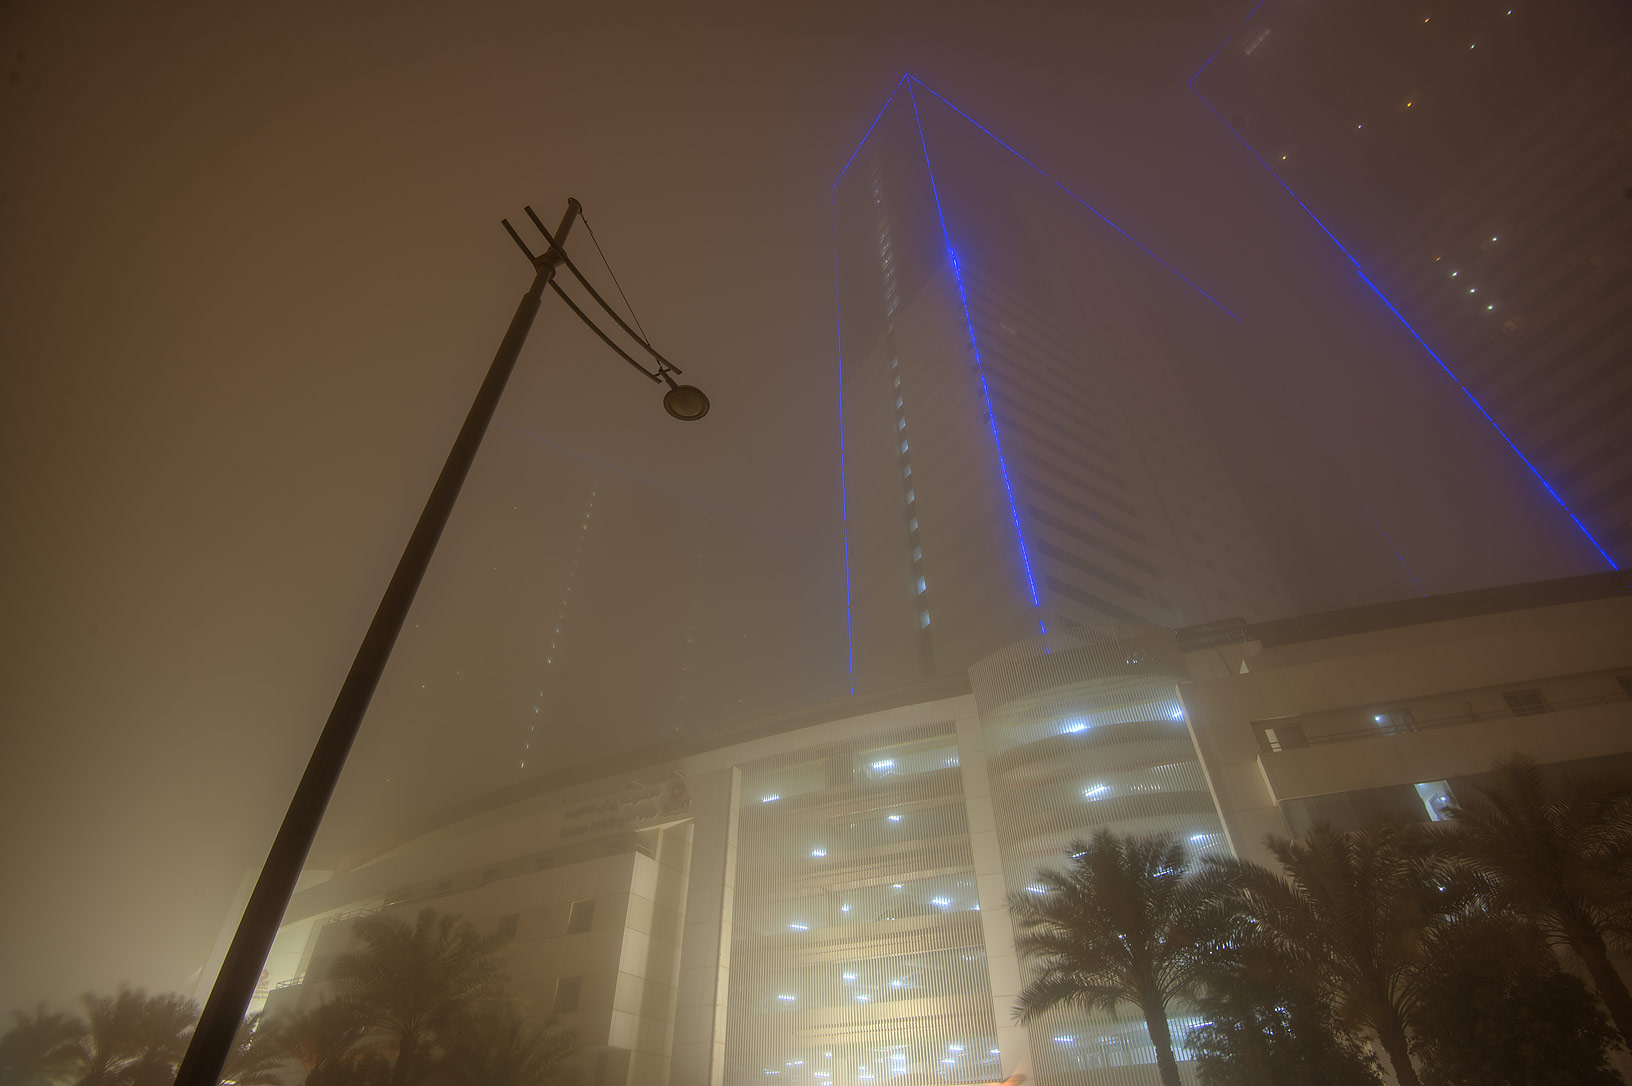 Tower No. 3 of Ezdan Hotel and Suites in West Bay during dust storm. Doha, Qatar